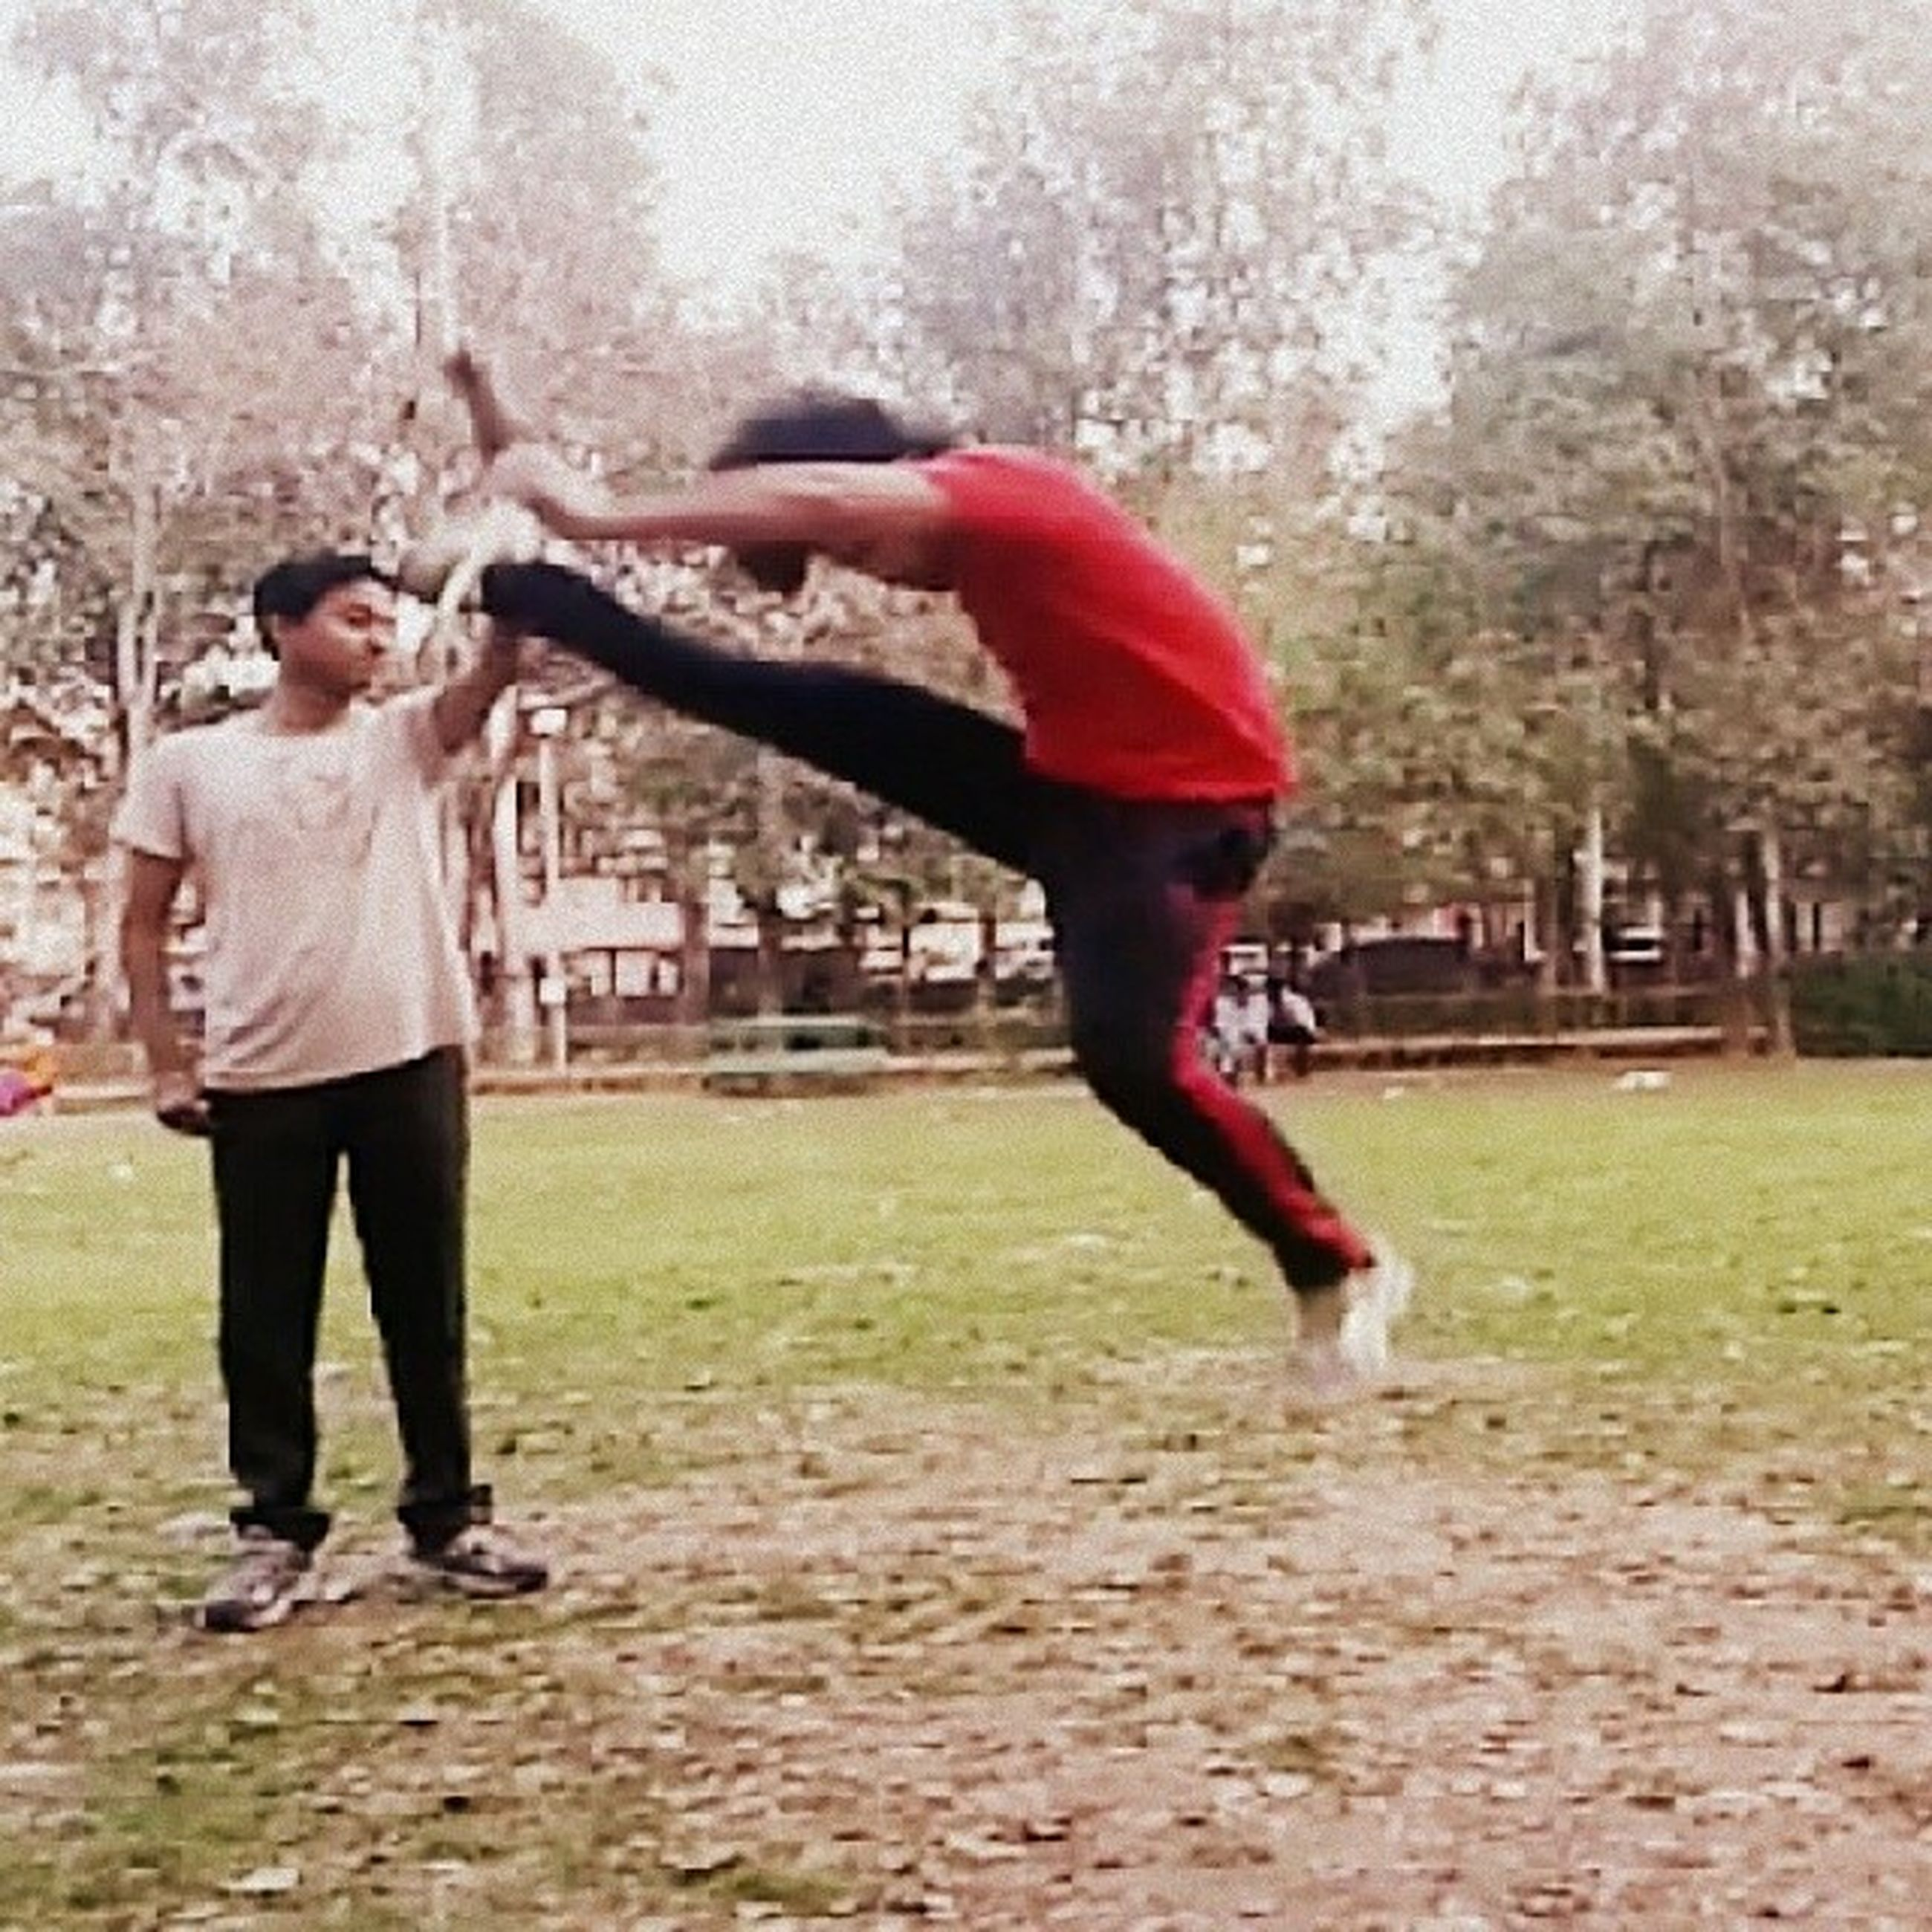 full length, lifestyles, tree, casual clothing, childhood, person, leisure activity, elementary age, jumping, playing, people, park - man made space, fun, playful, young adult, motion, front view